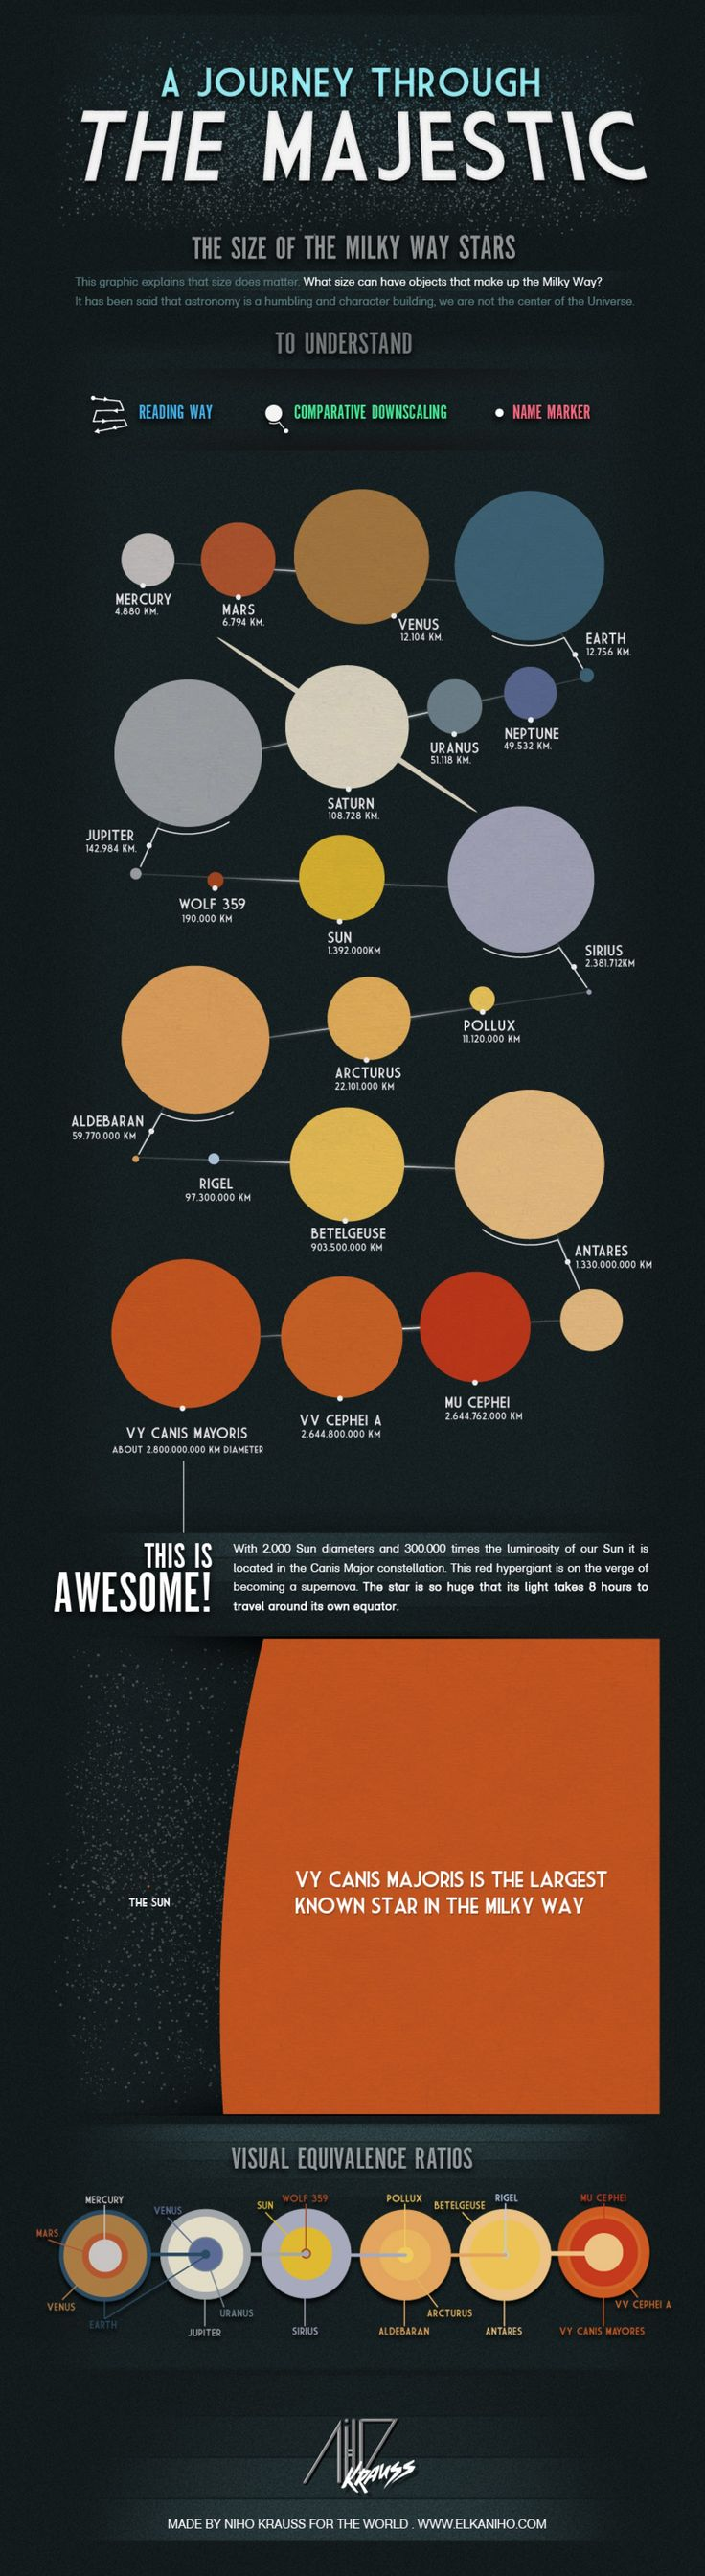 A Journey Through the Majestic: The Size of Milky Way Stars, infographic.